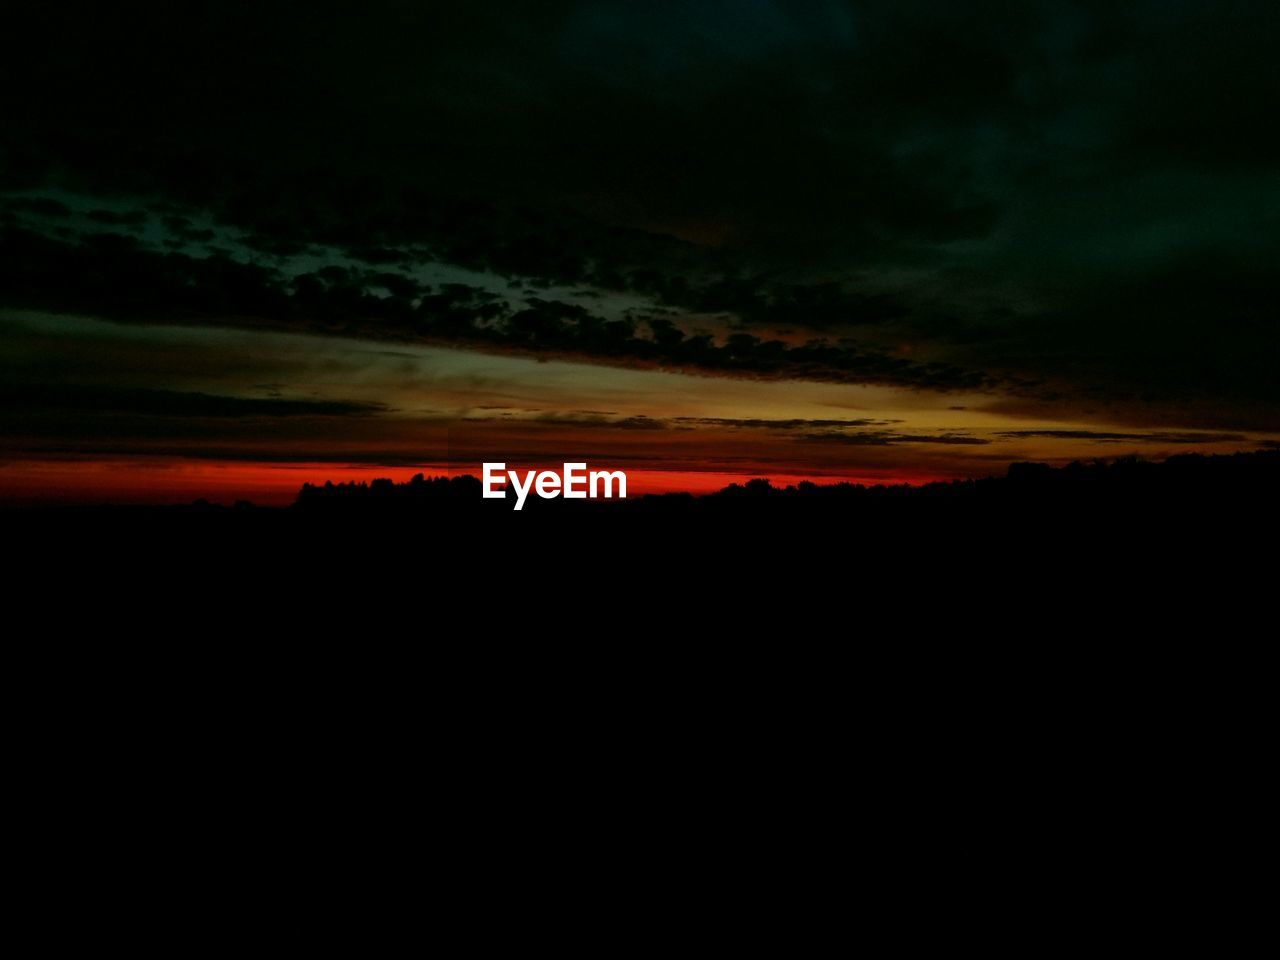 sky, sunset, silhouette, cloud - sky, nature, beauty in nature, environment, orange color, spooky, scenics - nature, dramatic, dark, no people, tranquility, tranquil scene, landscape, dramatic sky, idyllic, surreal, cloudscape